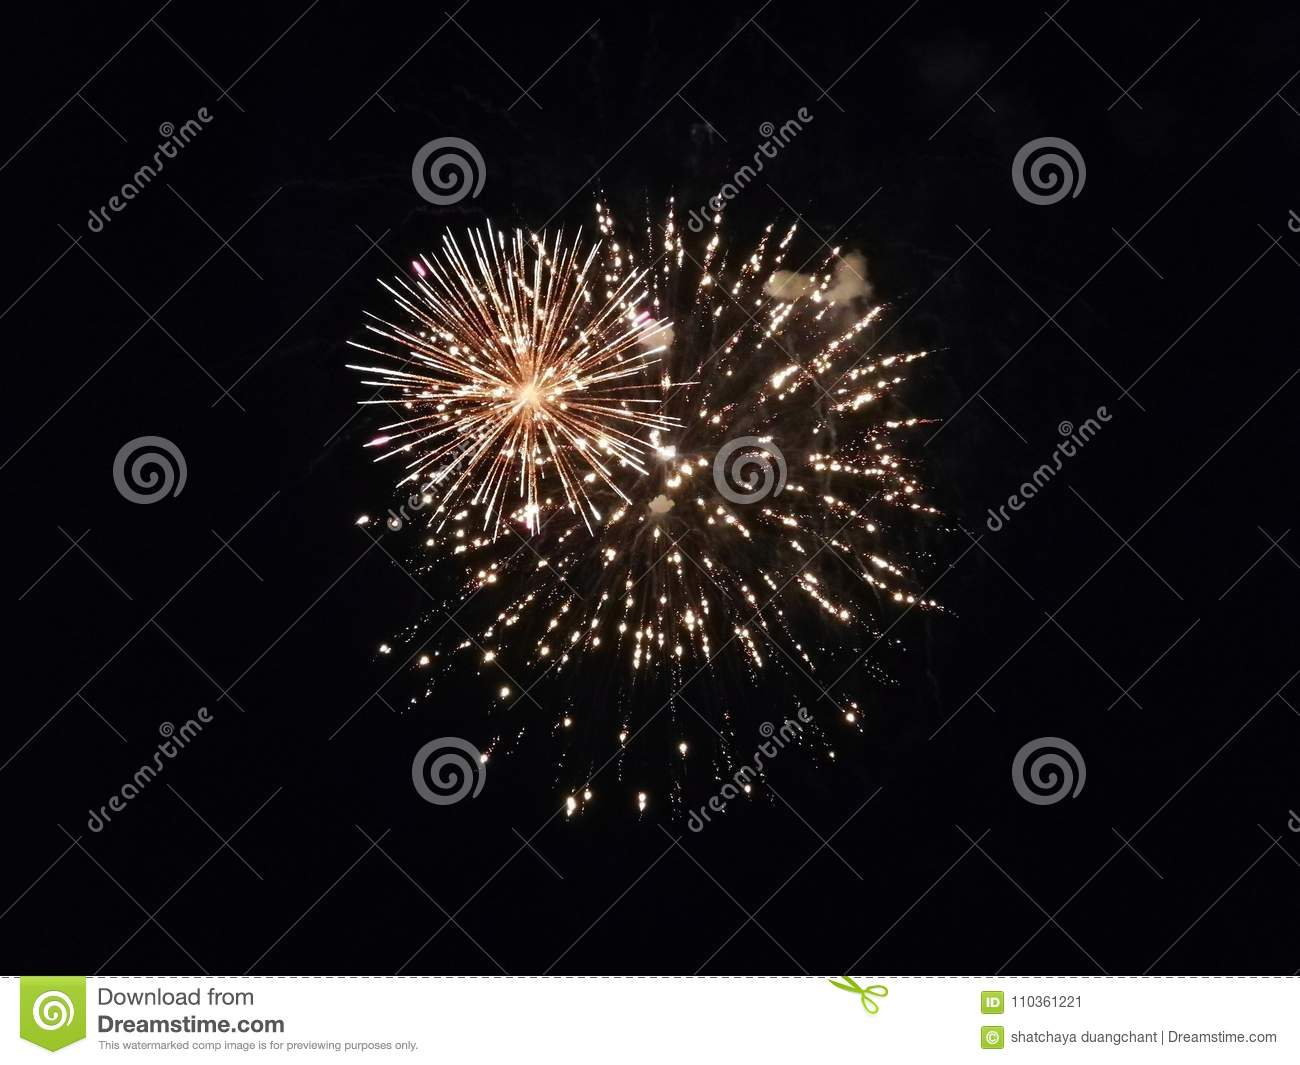 A Beautiful Light From FIRECRACKER In Dark Sky Stock Image - Image